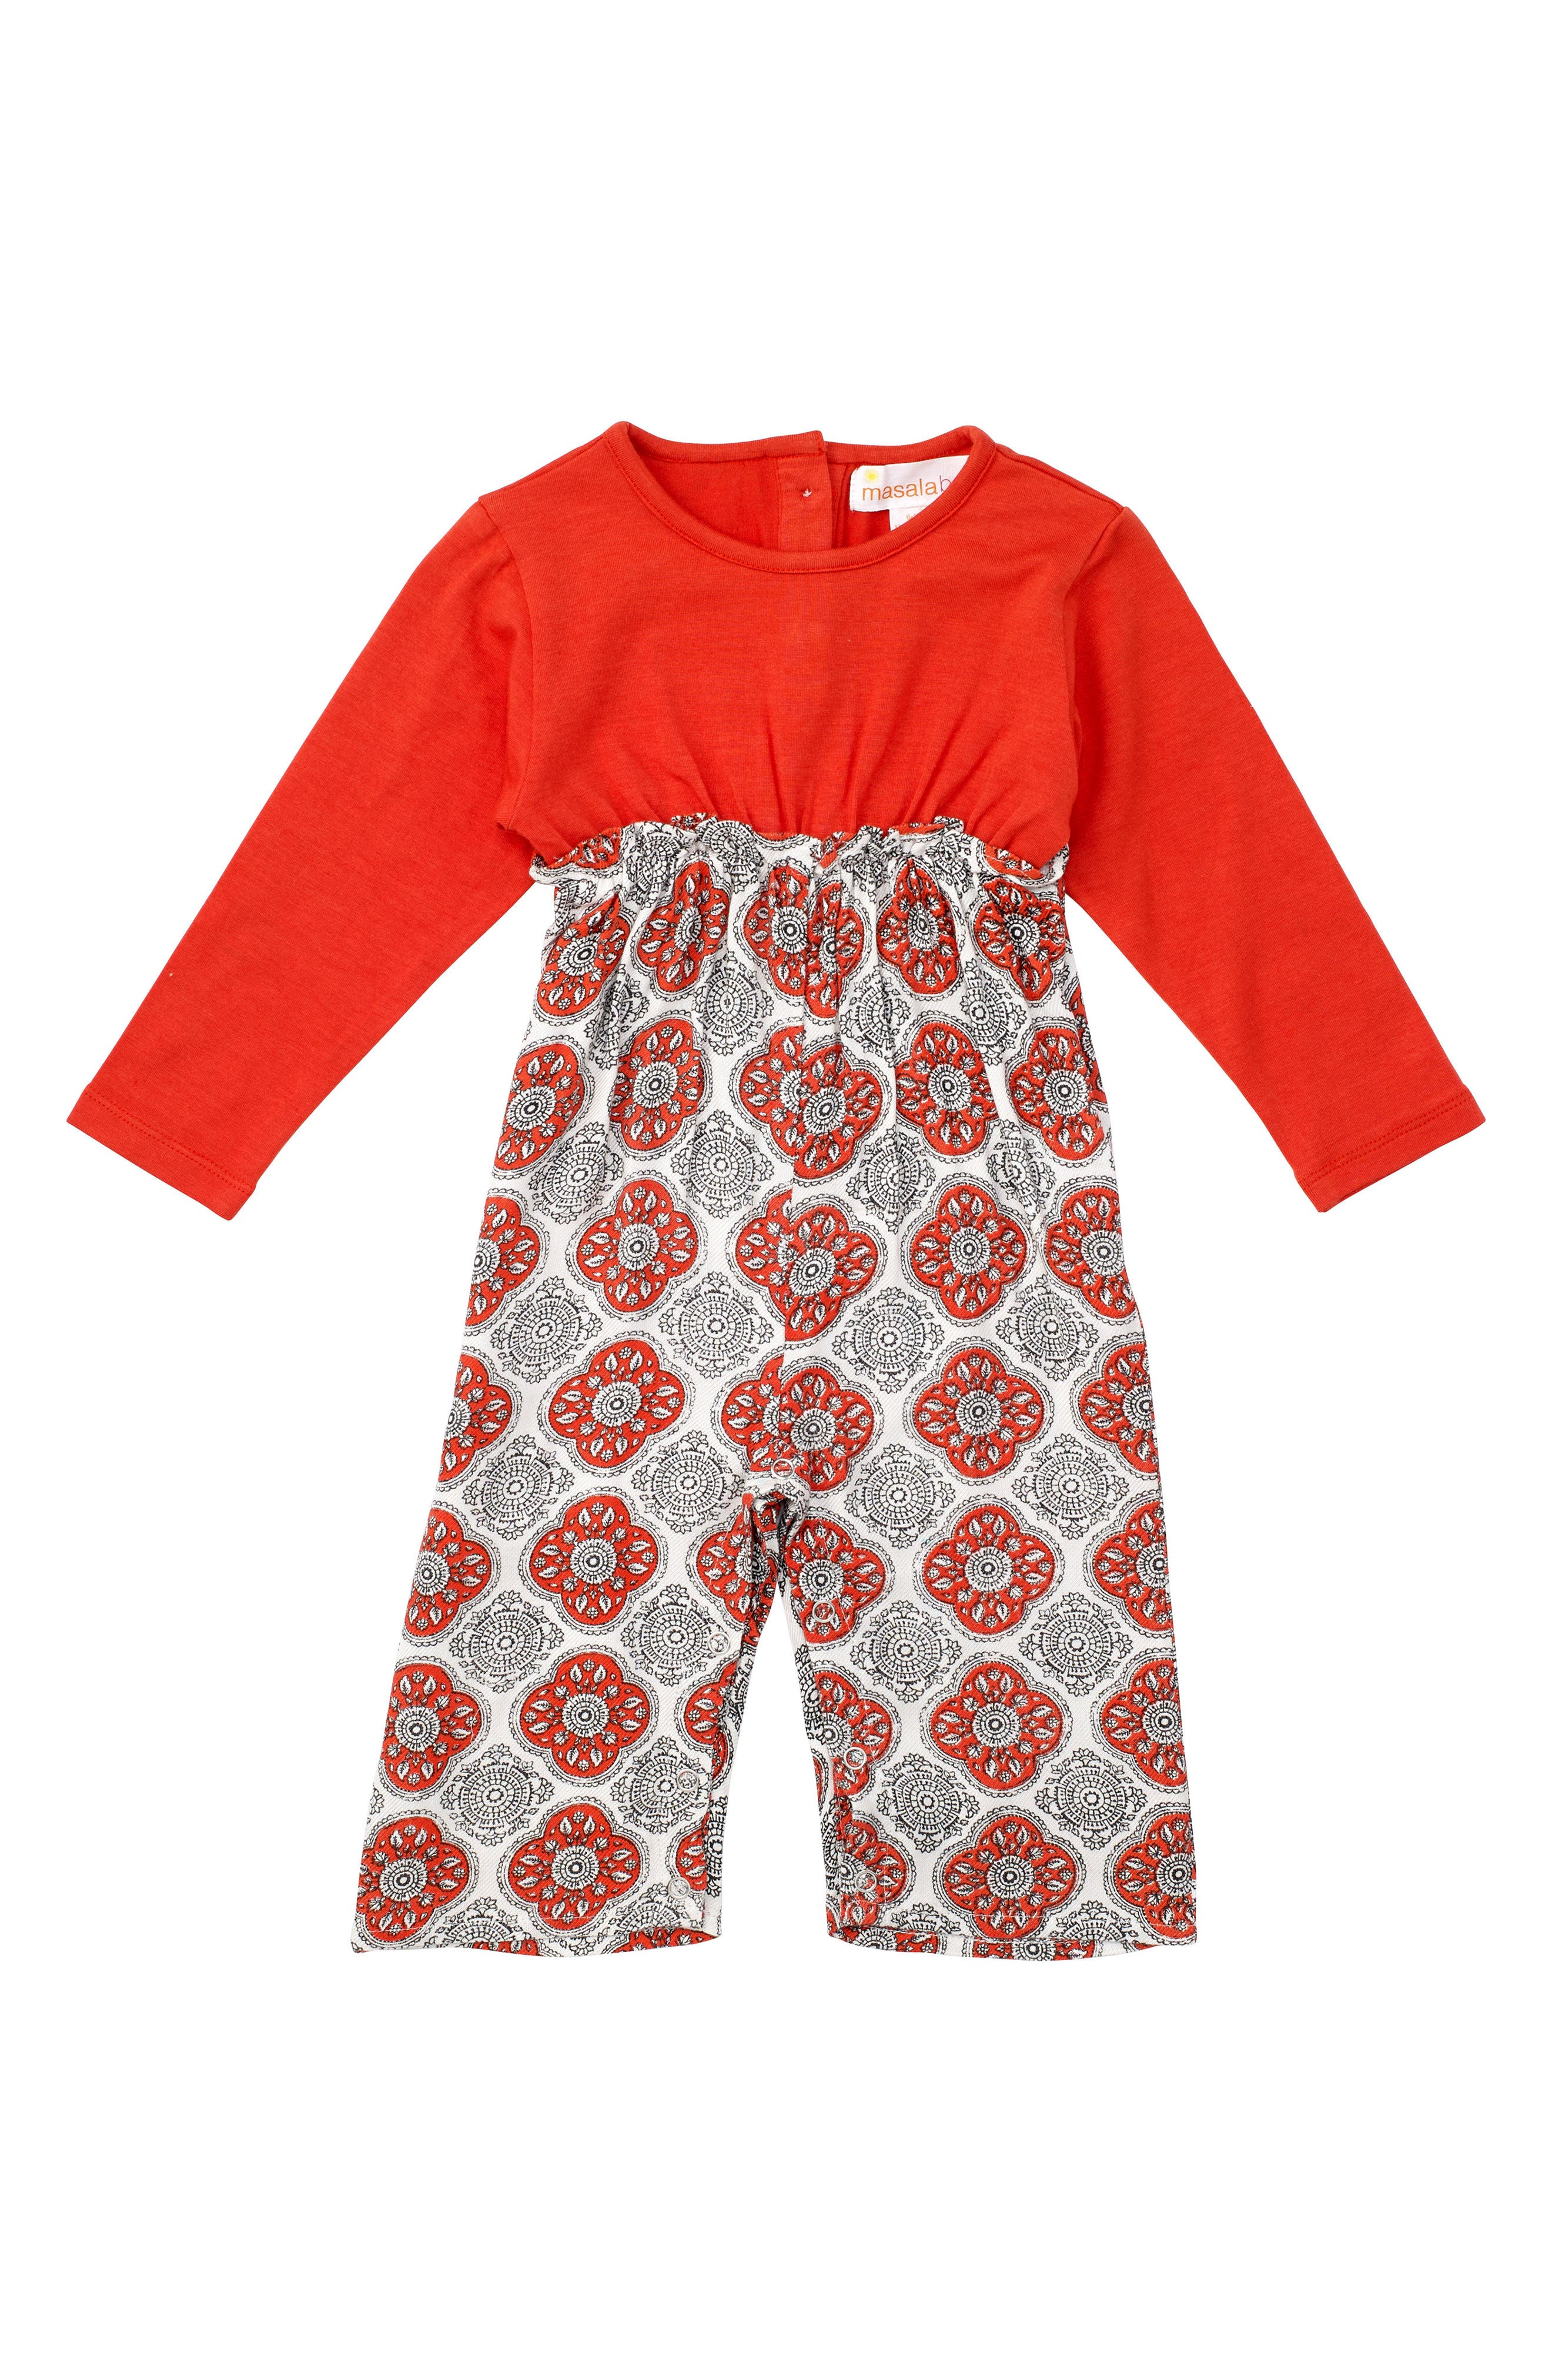 Alternate Image 1 Selected - Masalababy Chelsea Romper (Baby Girls)